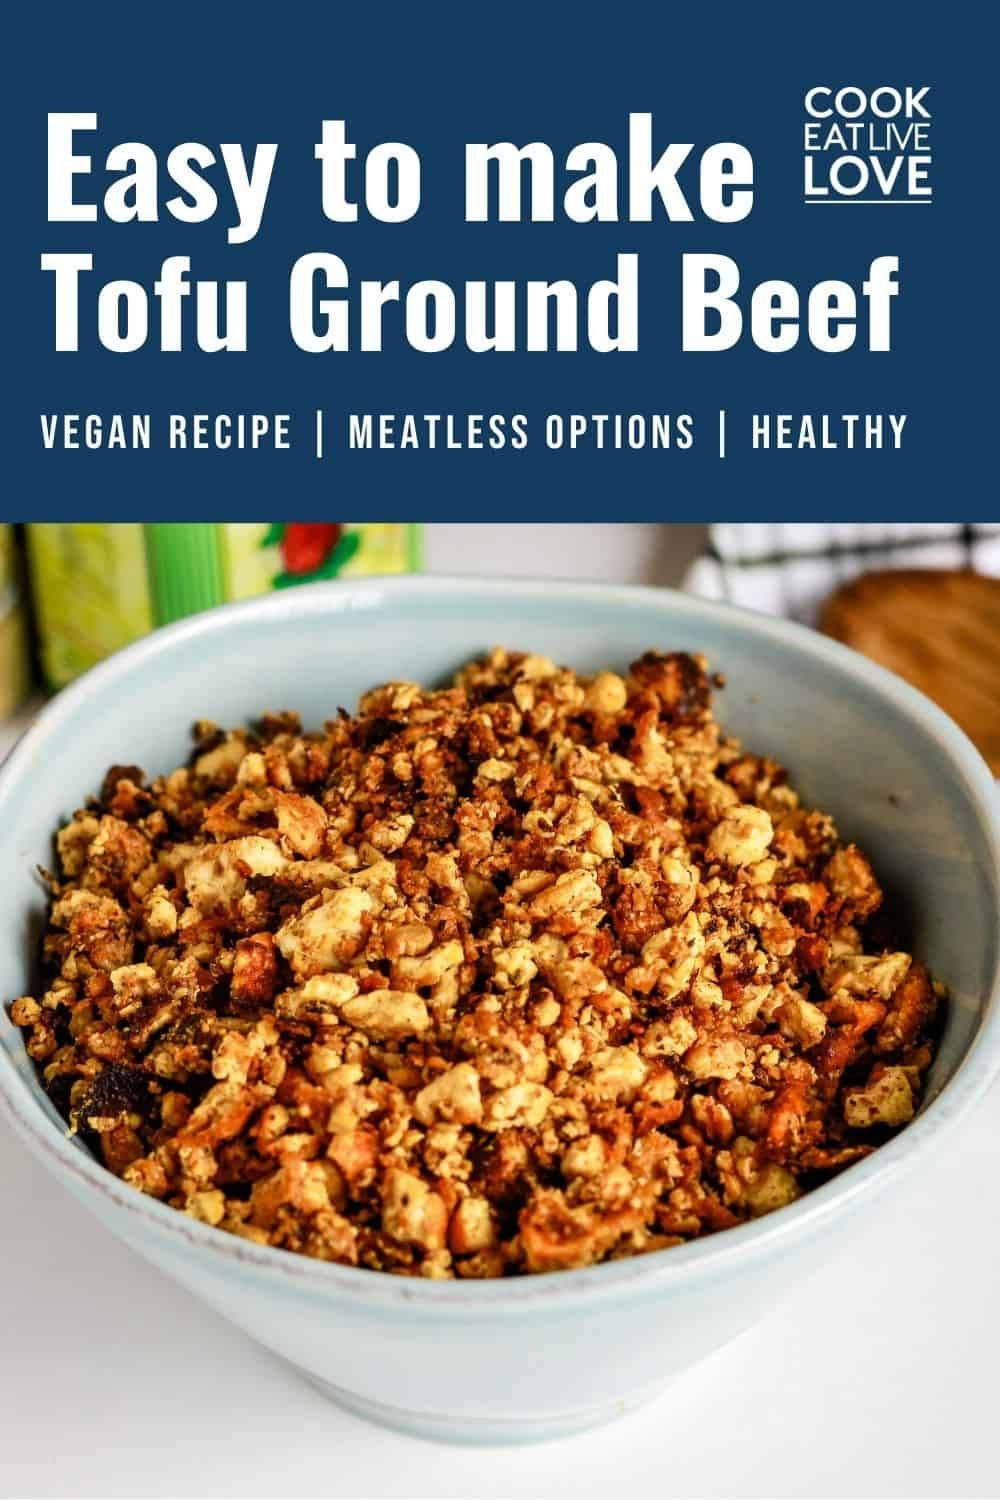 Making A Tofu Ground Beef Substitute Cook Eat Live Love Recipe In 2020 Recipes Cooking Ground Beef